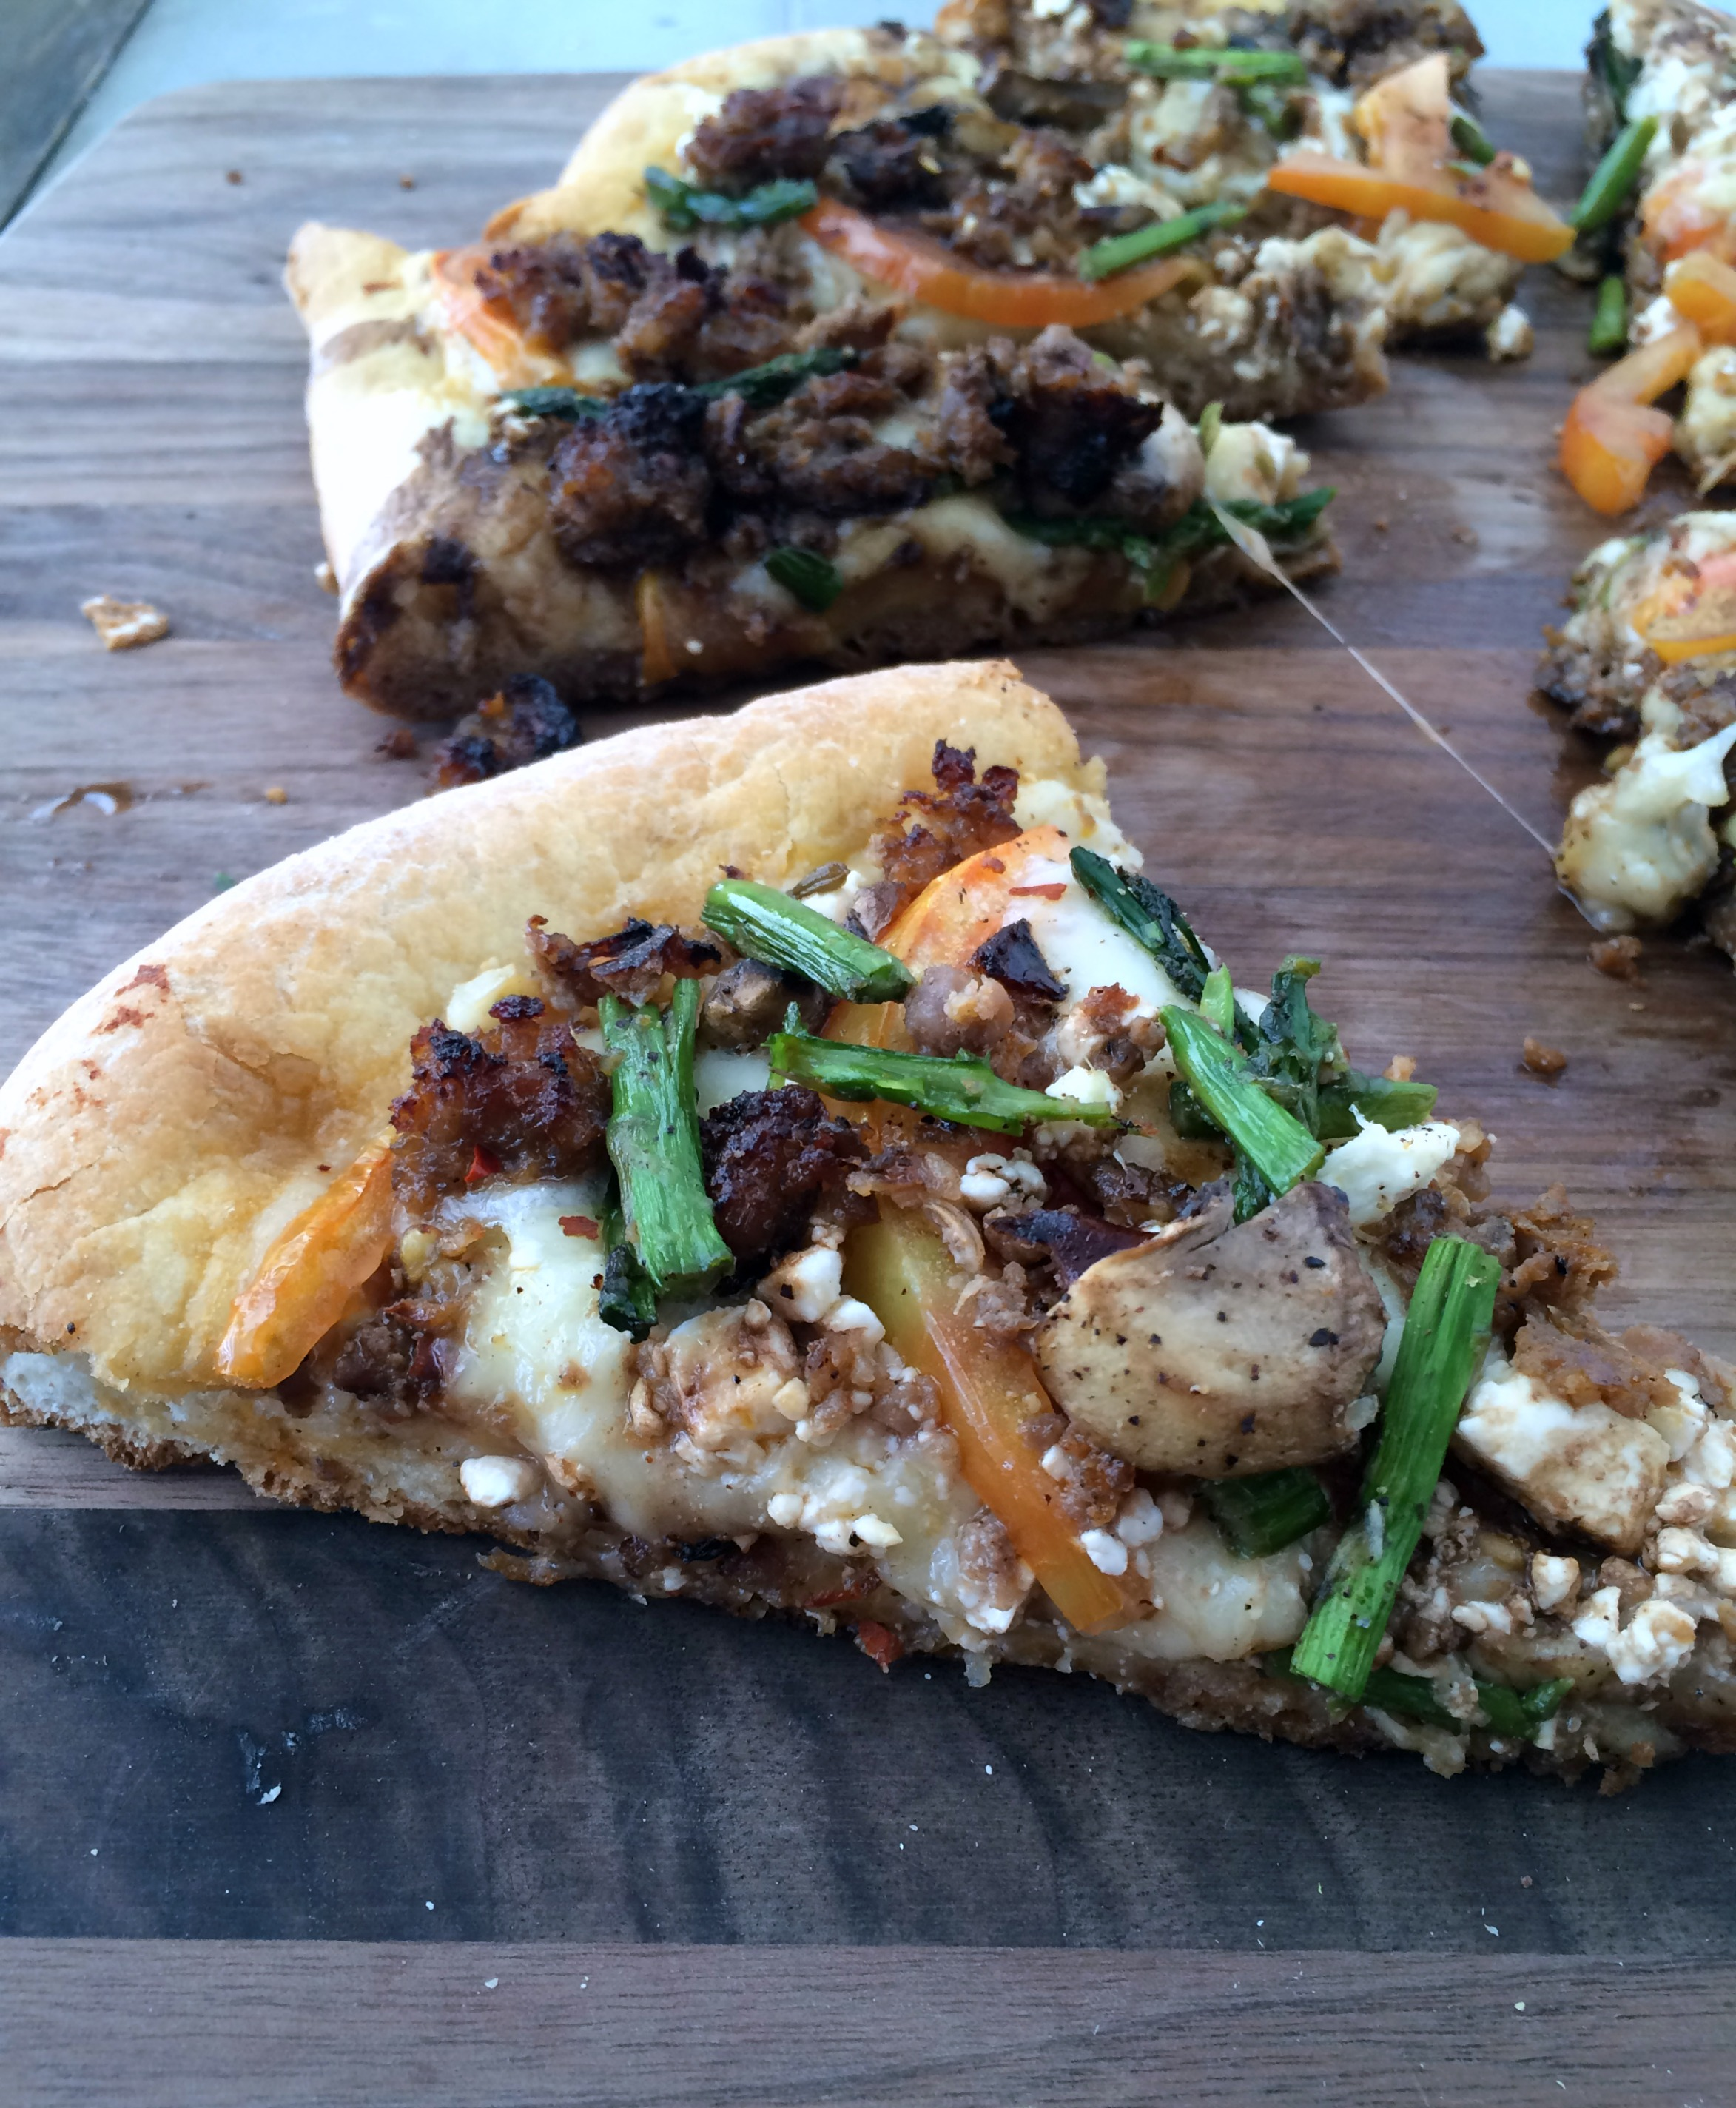 Then I decided this pizza needed a little meat for my mushroom-lovin ...